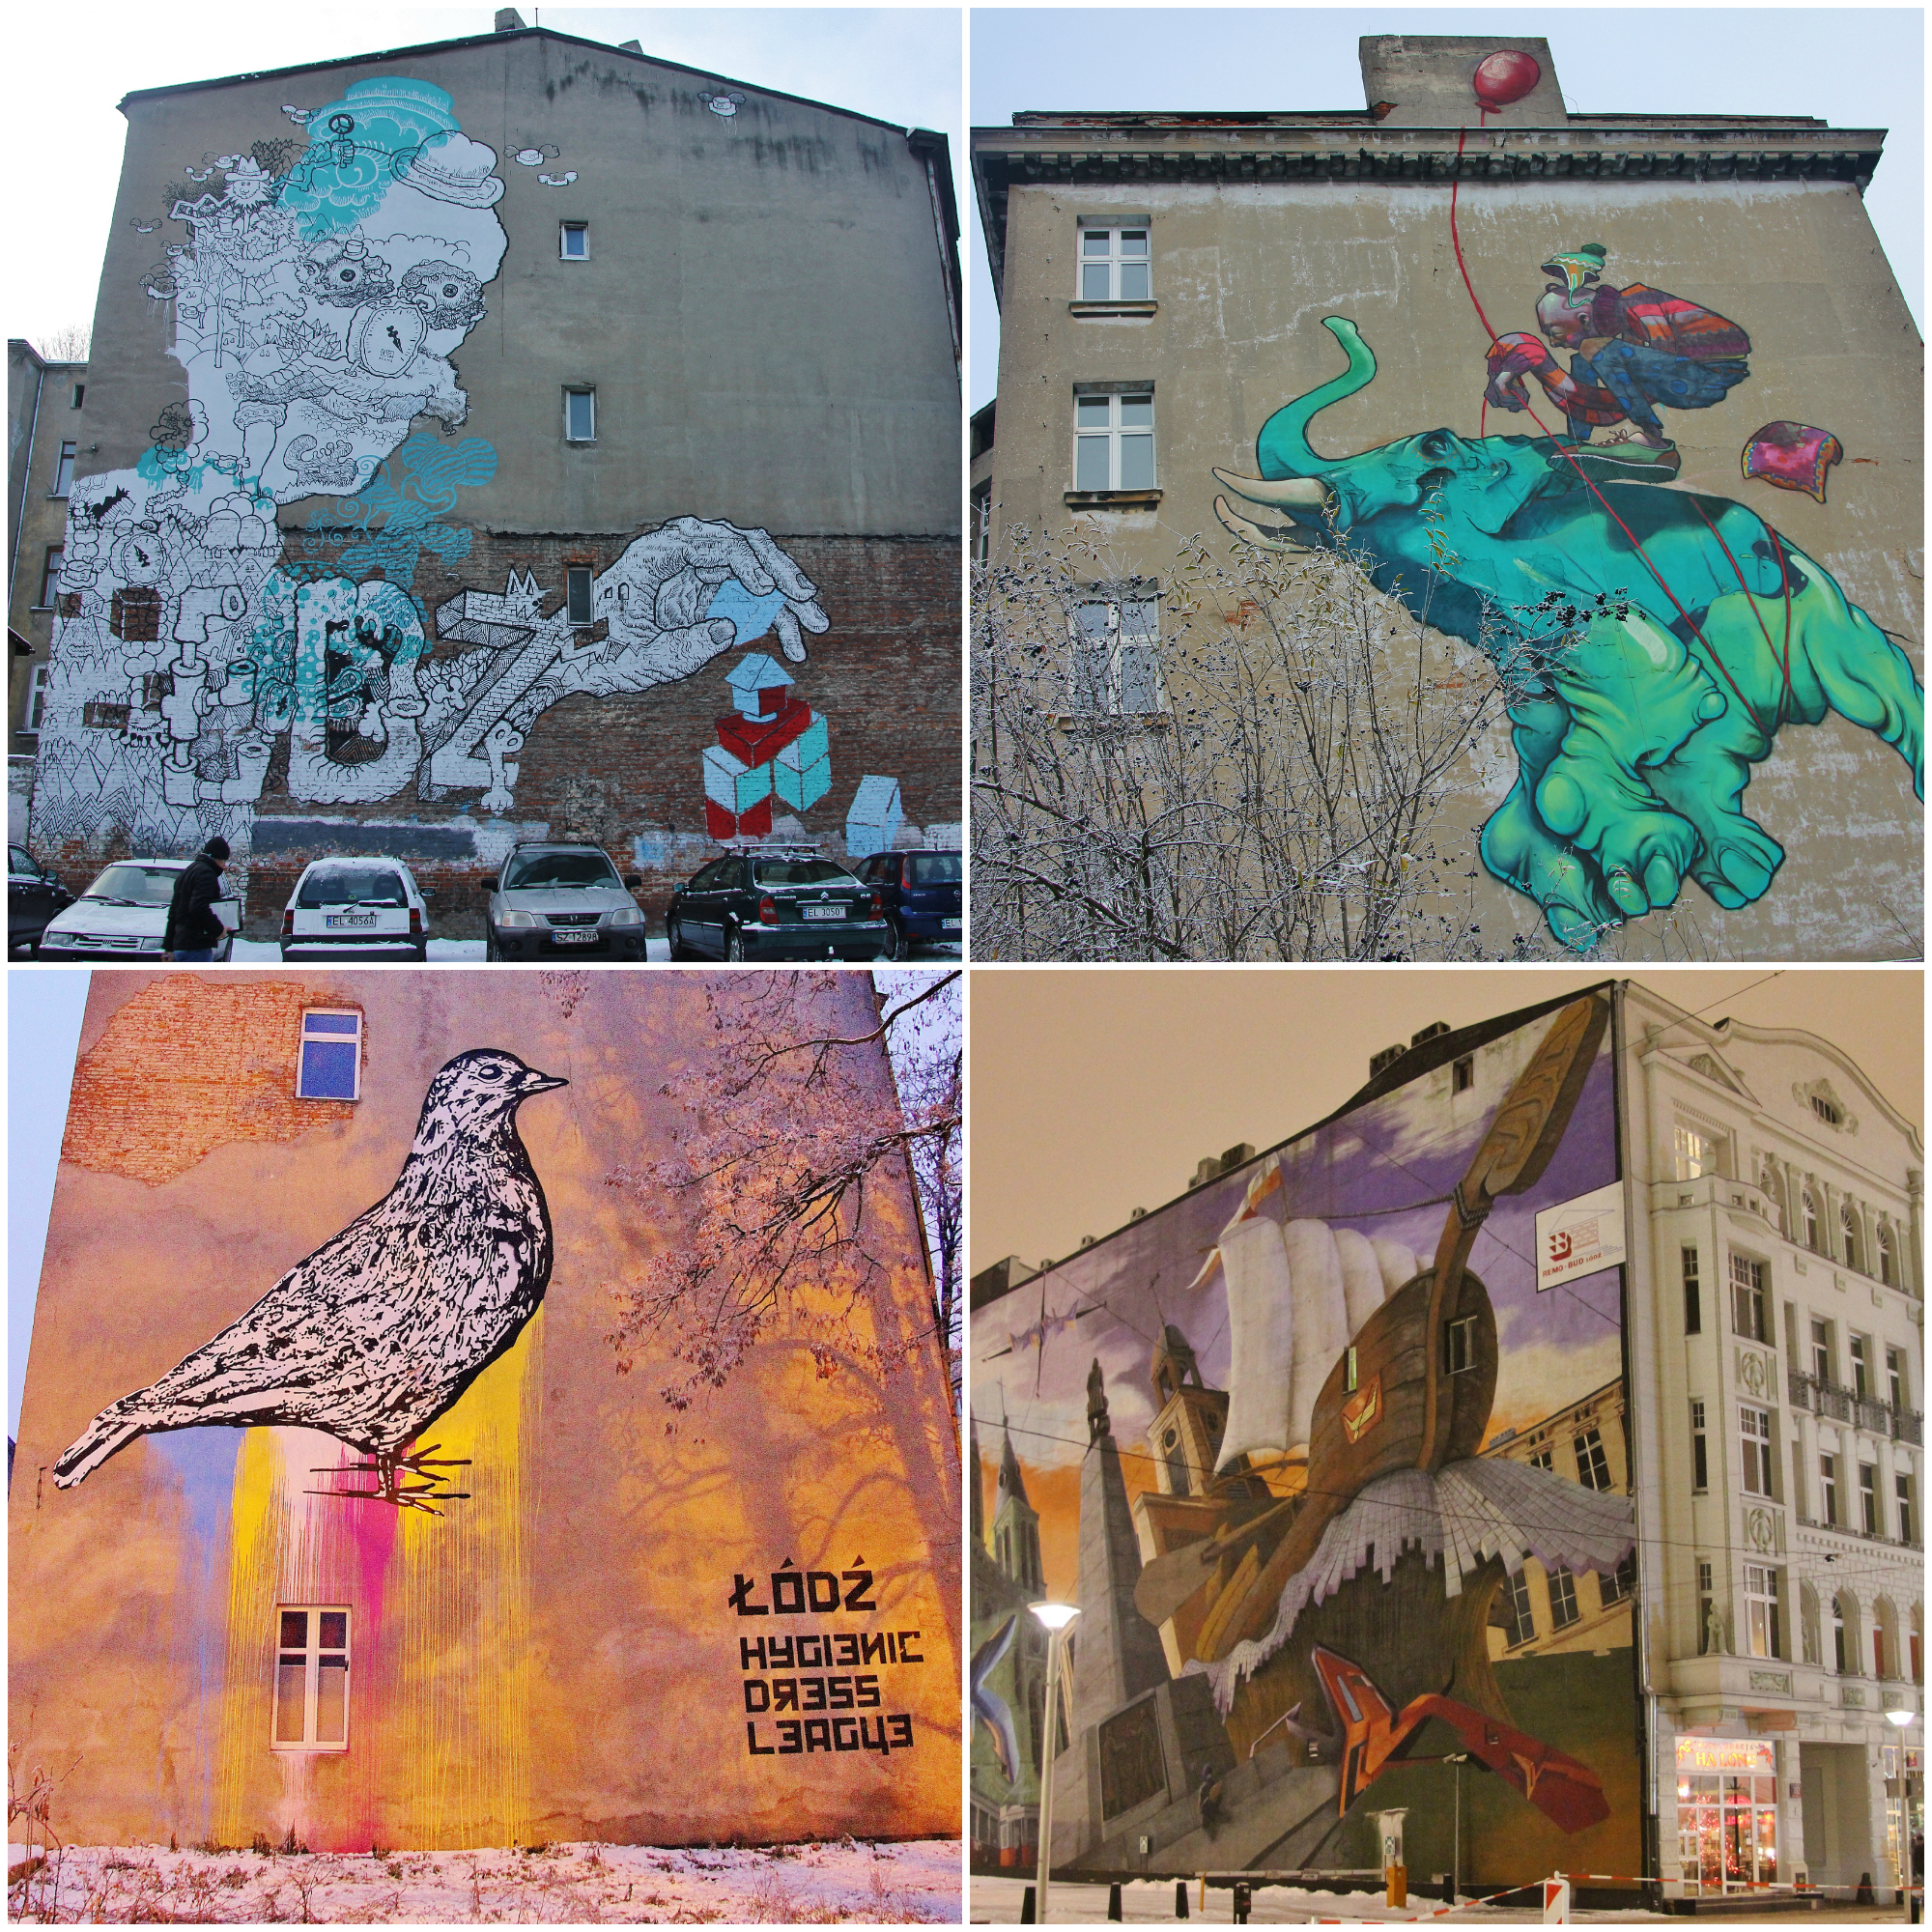 Urban Forms, Street Art in Lodz